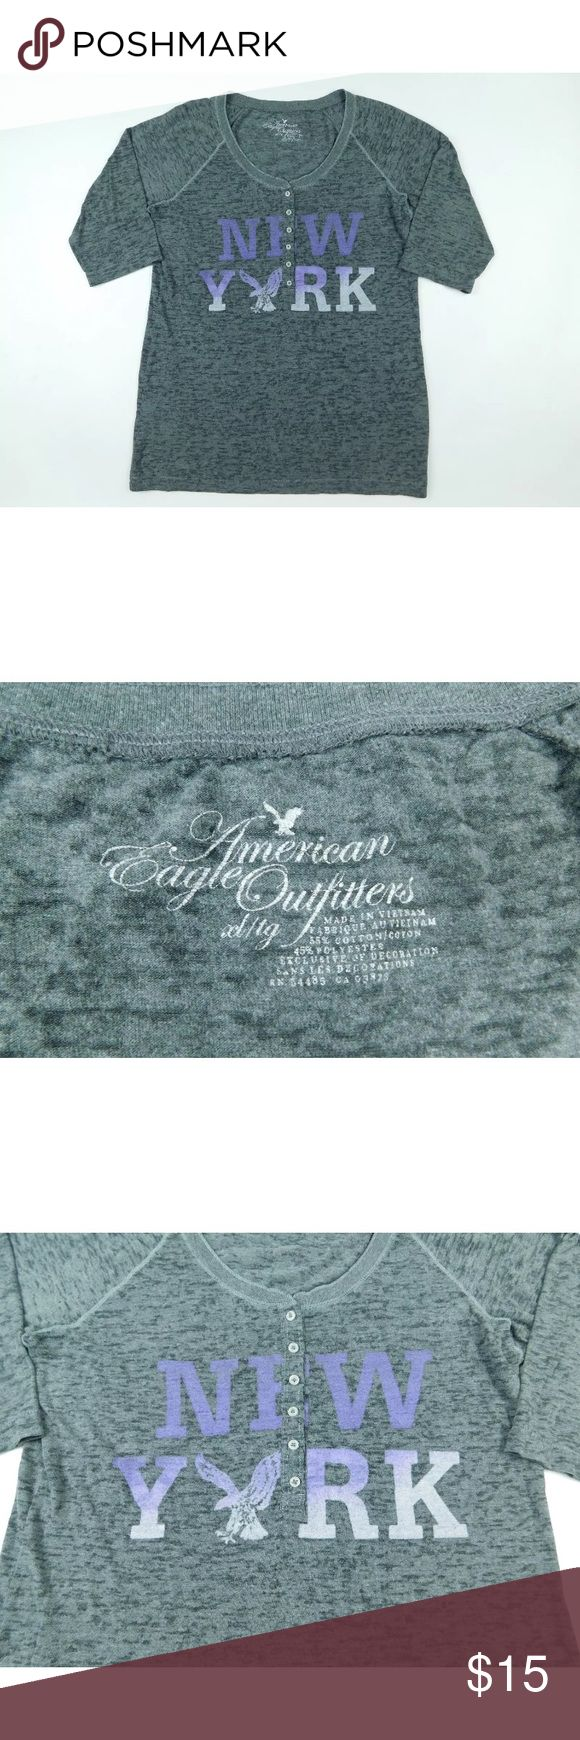 🌼American Eagle Outfitters🌼 NY Spell Out T Shirt Gently used clothing.  No flaws. American Eagle Outfitters Tops Tees - Short Sleeve